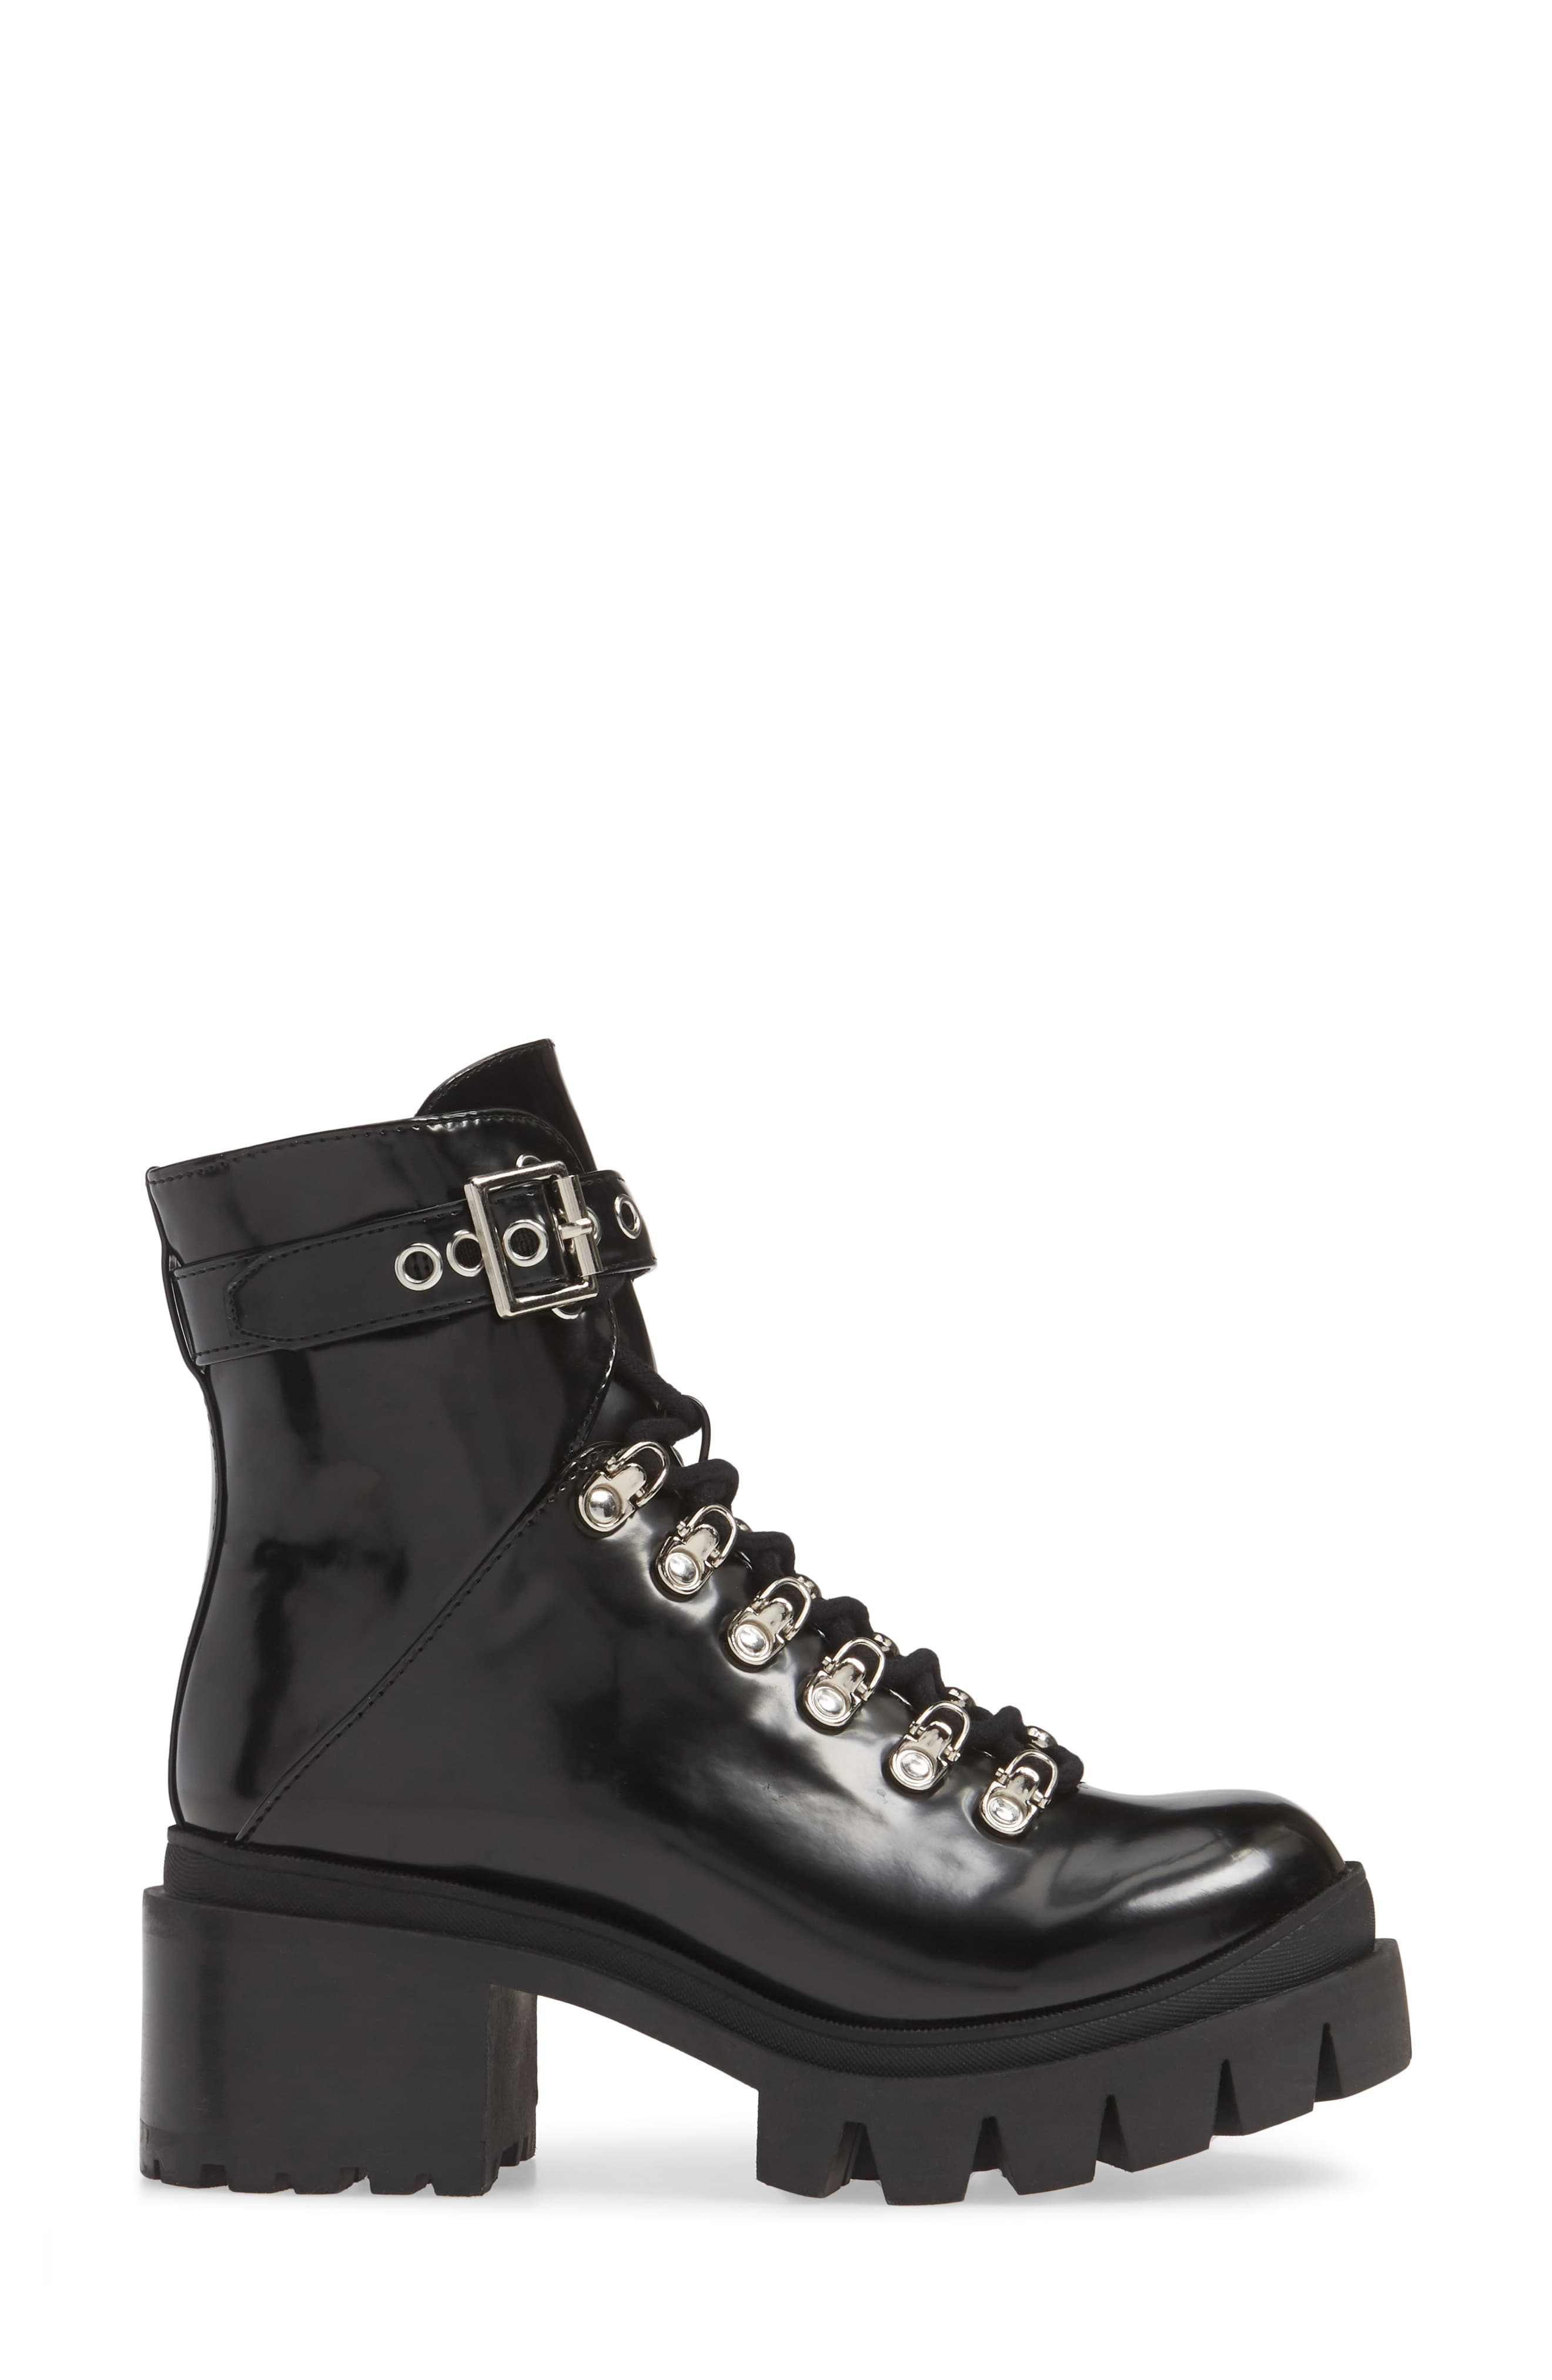 Platform Combat Boots To Wear For Fall 2020